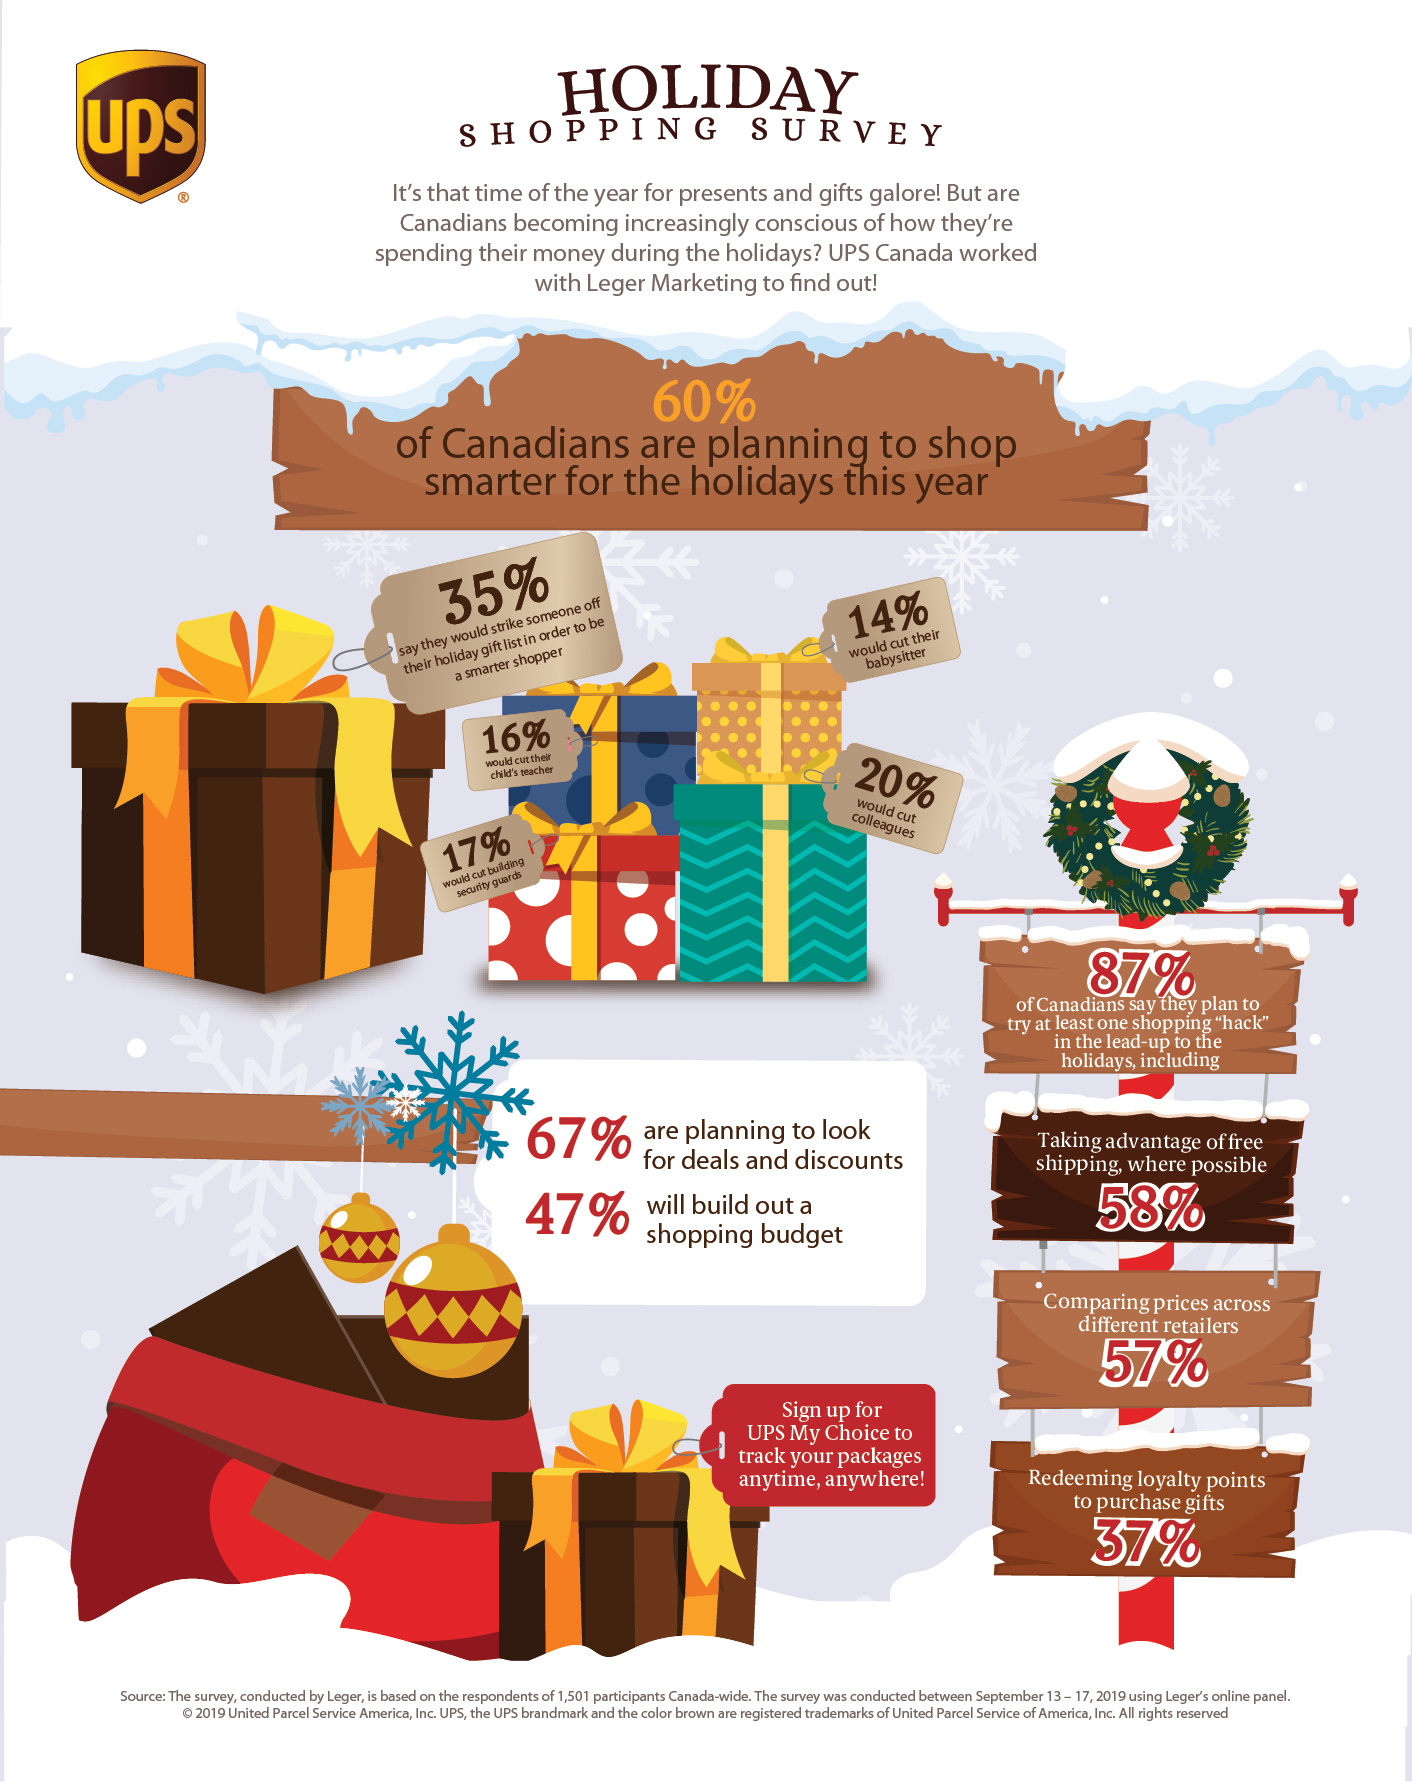 City Style and Living Magazine Winter Shopping hacks for holiday with ups infographic